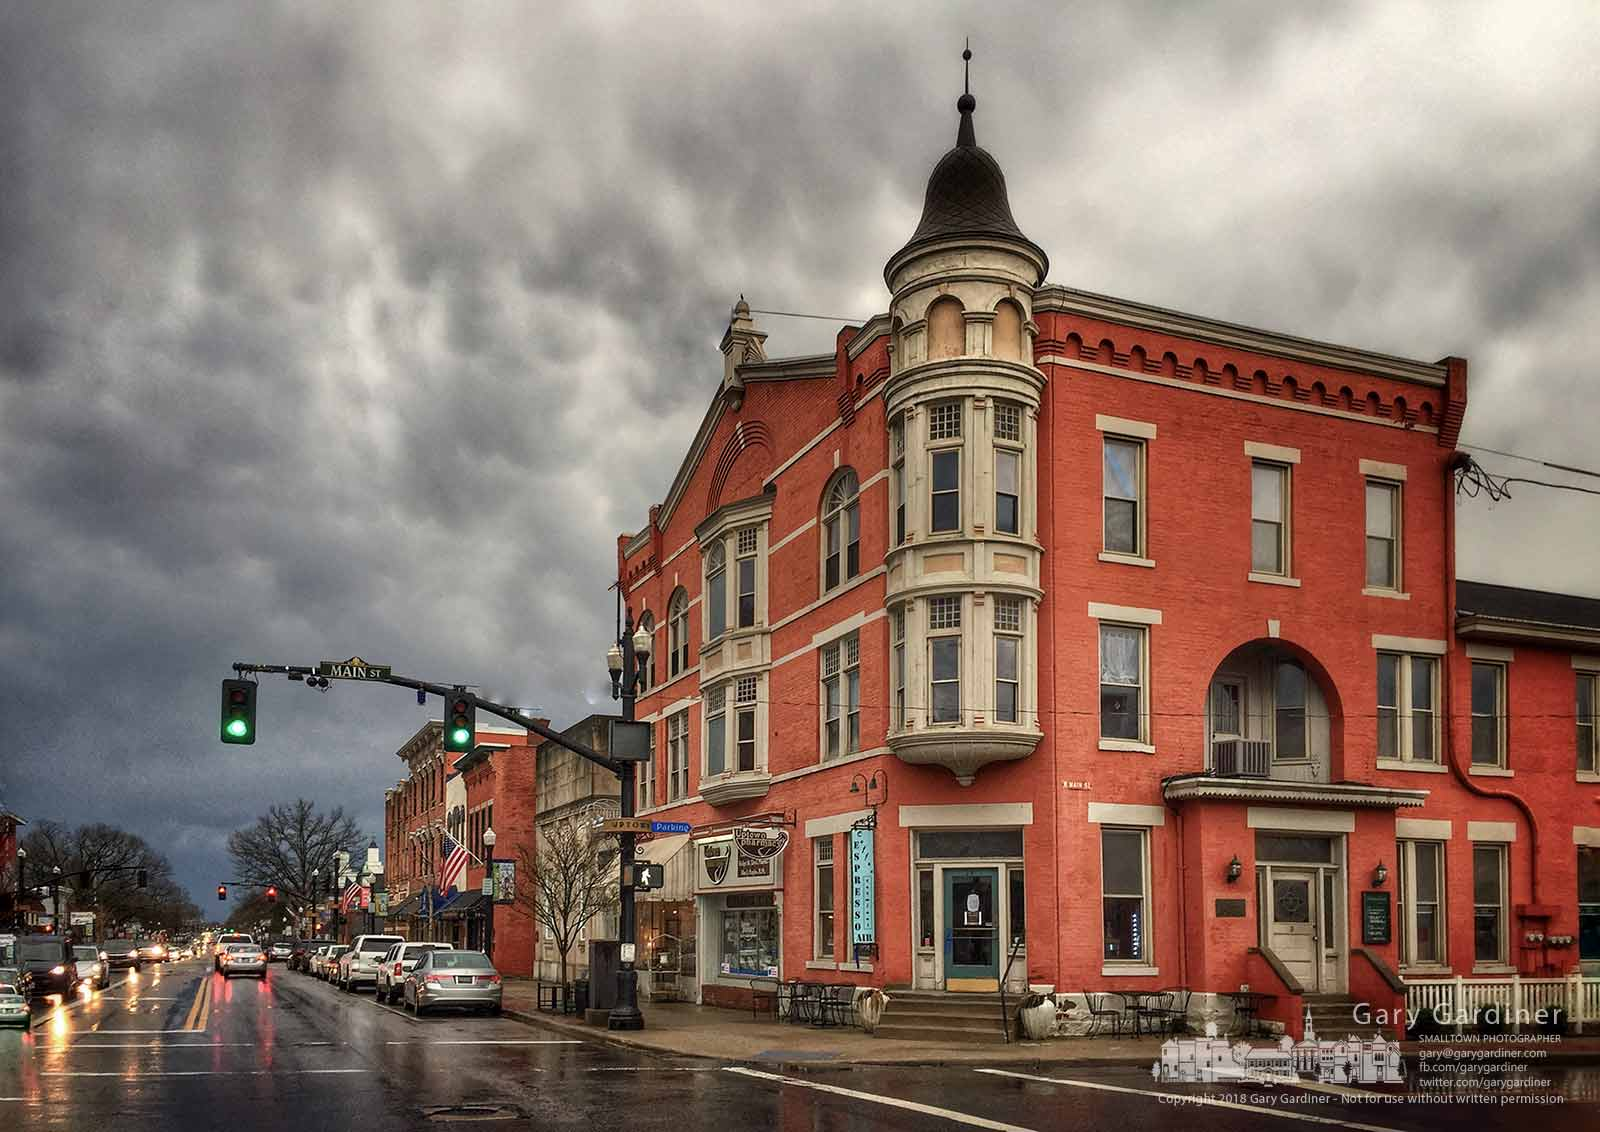 An afternoon storm darkens the sky over the Holmes Hotel in Uptown Westerville as a Spring storm brings rain and winds to central Ohio. My Final Photo for April 3, 2018.